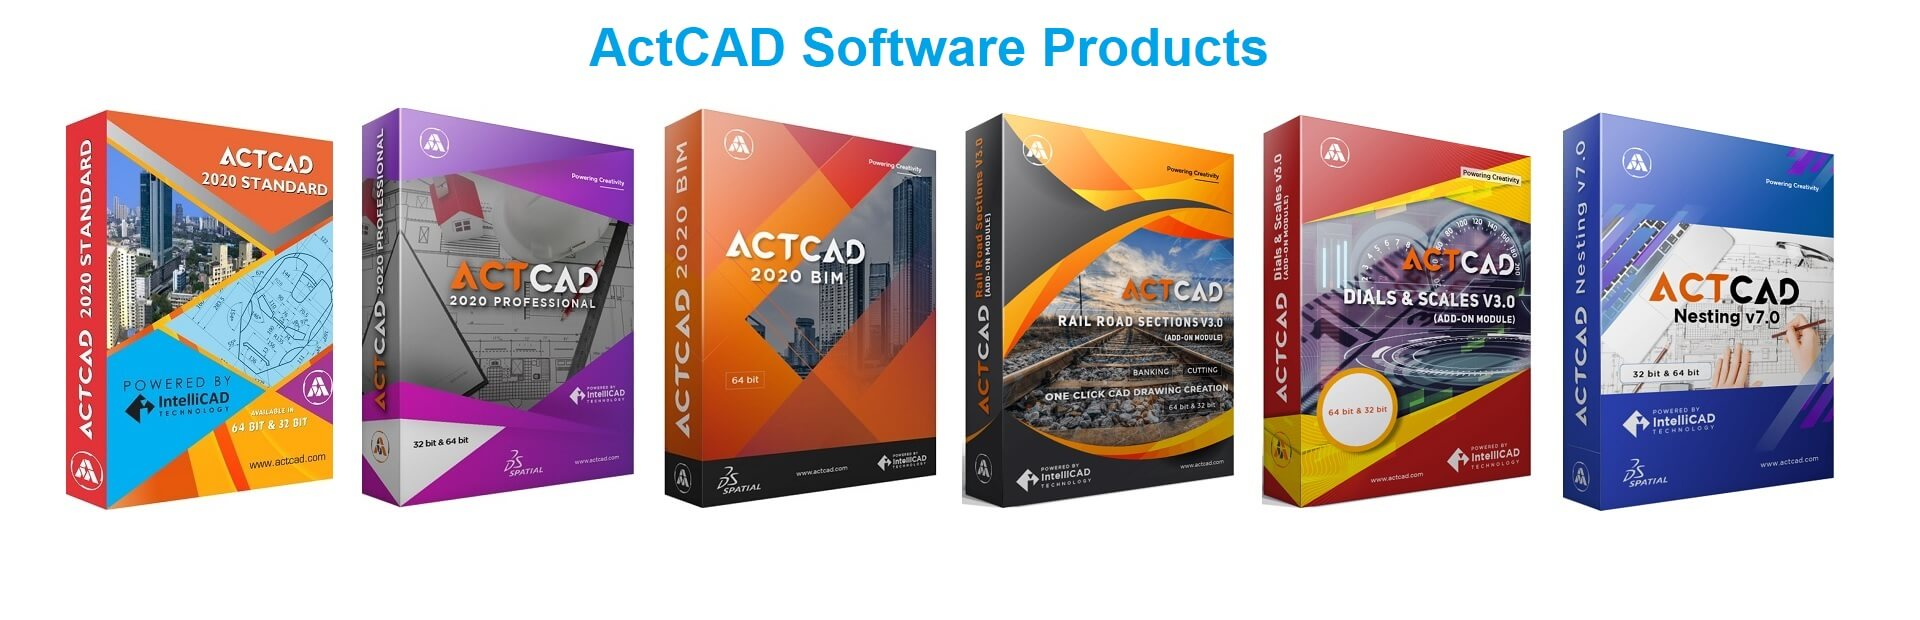 actcad intellicad cad software